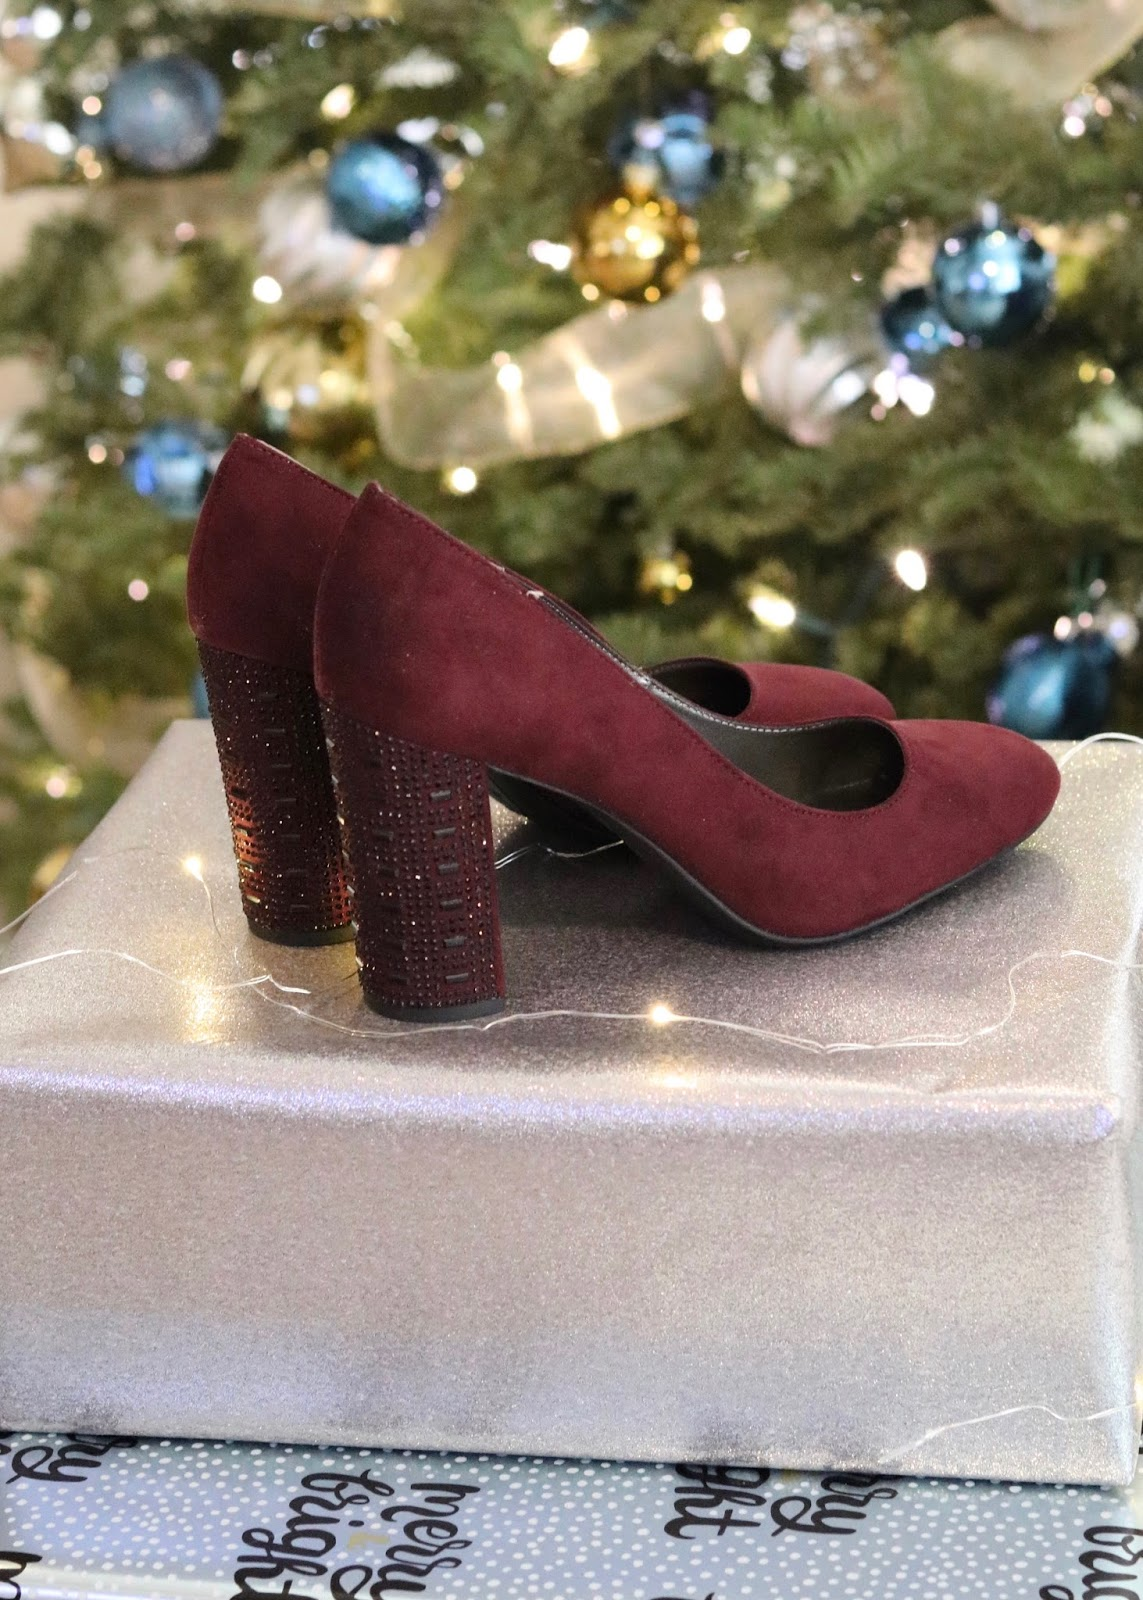 Libby Edelman Shelby Pumps, JCPeney Libby Edelman shoes, affordable cute heels